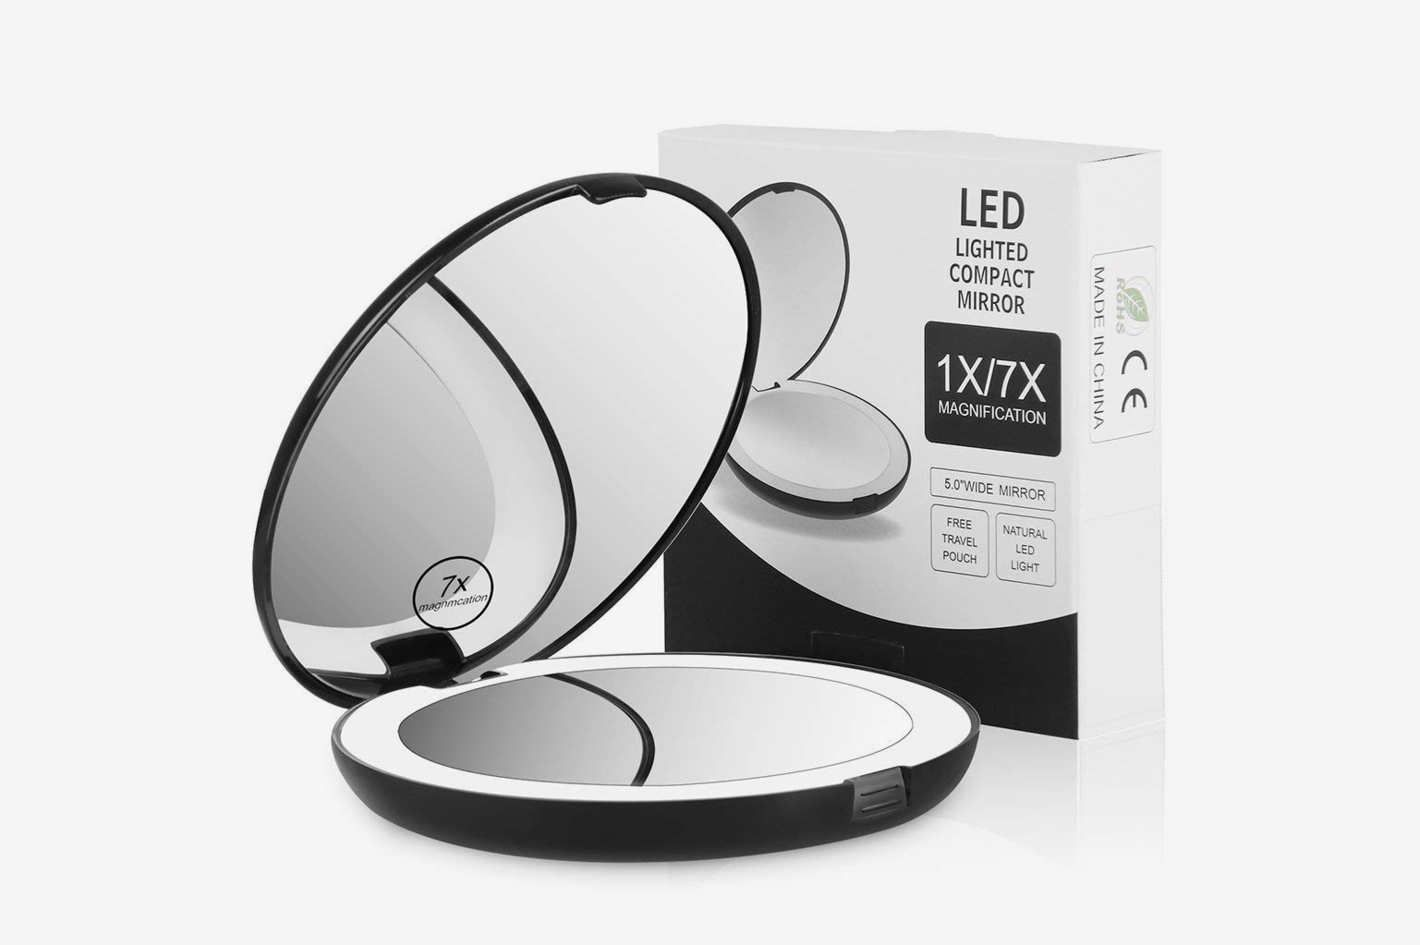 The Best Lighted Makeup Mirrors On Amazon According To Reviewers Travel Makeup Mirror Mirror With Led Lights Makeup Mirror With Lights